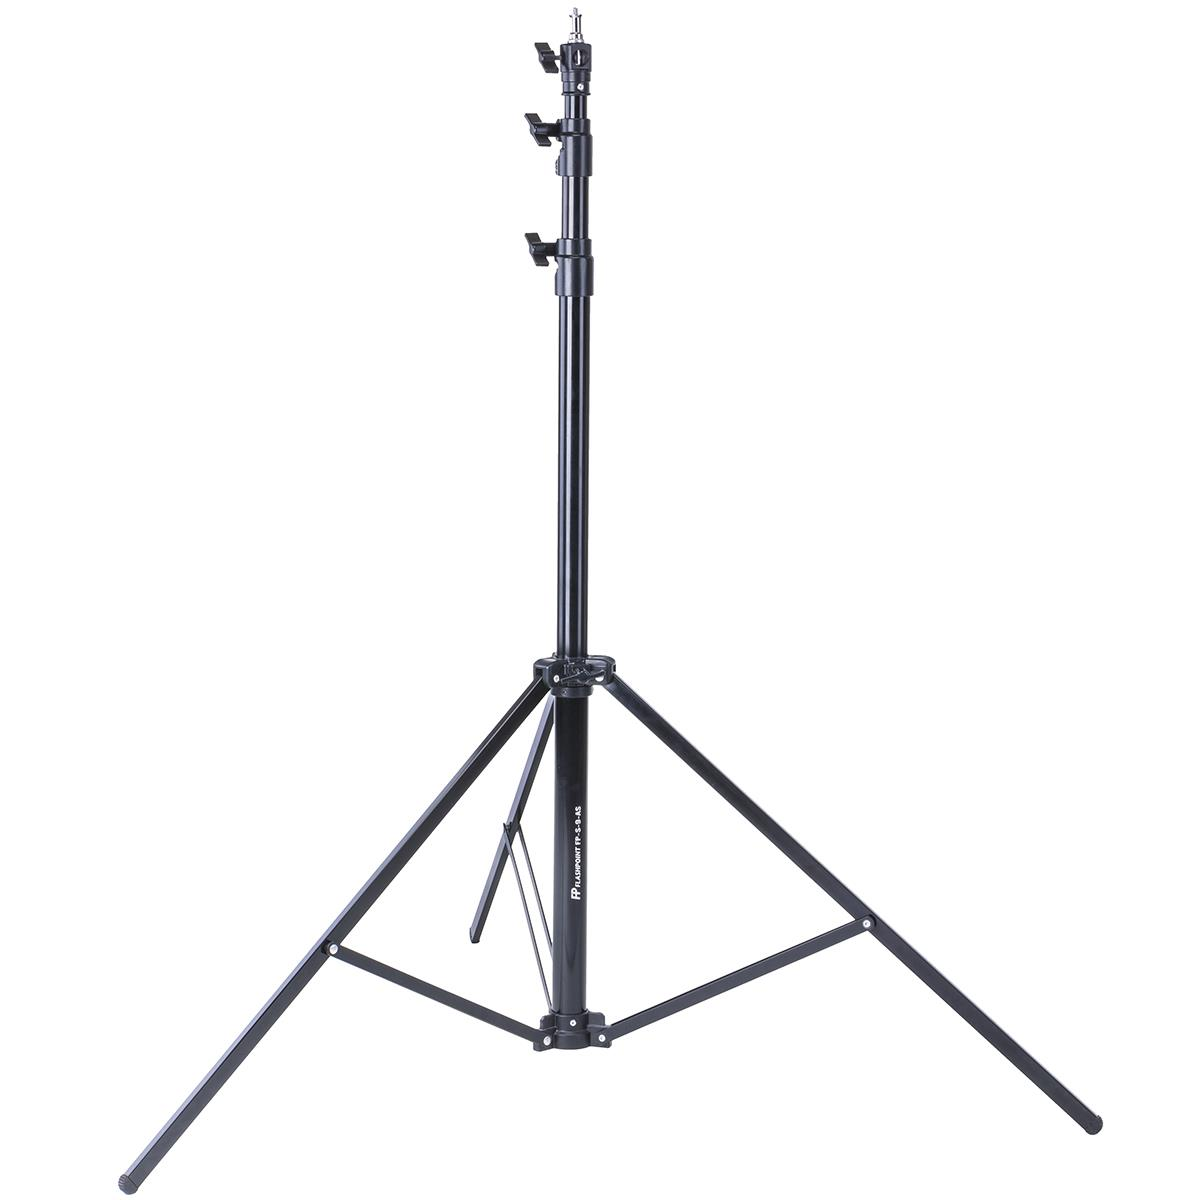 Flashpoint Auto Lightstand Review